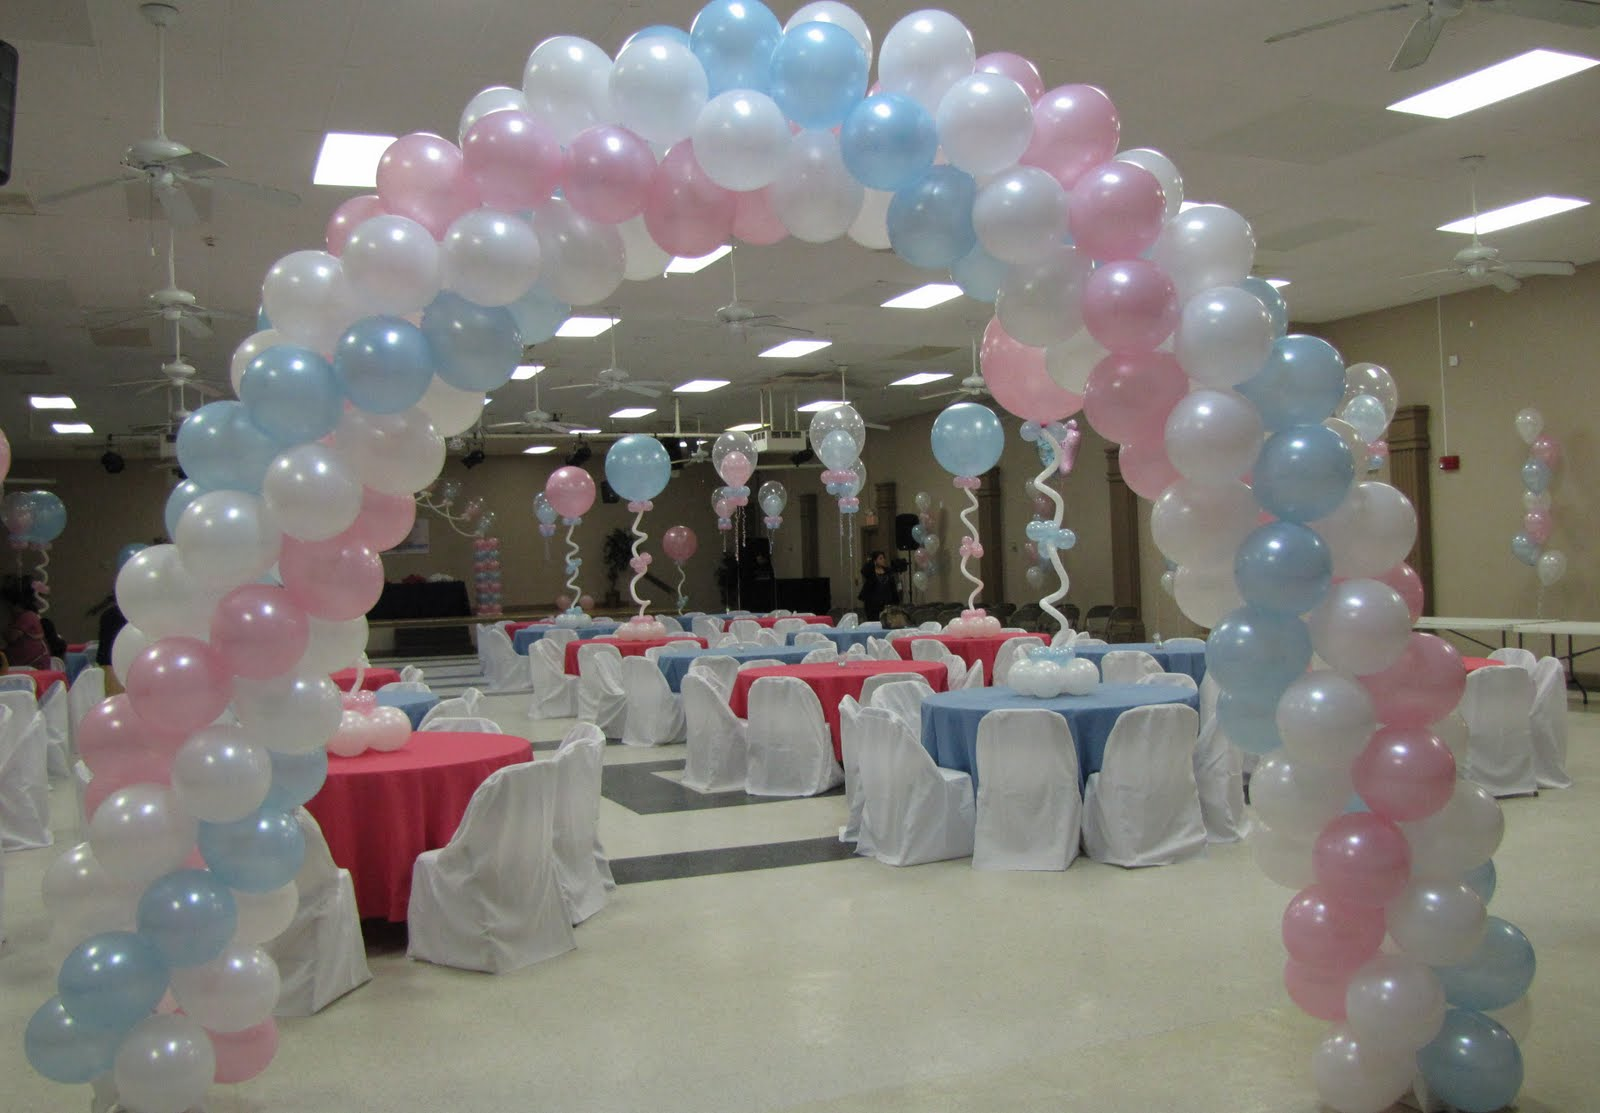 Balloons decorations for baby shower party favors ideas for Baby shower decoration ideas images